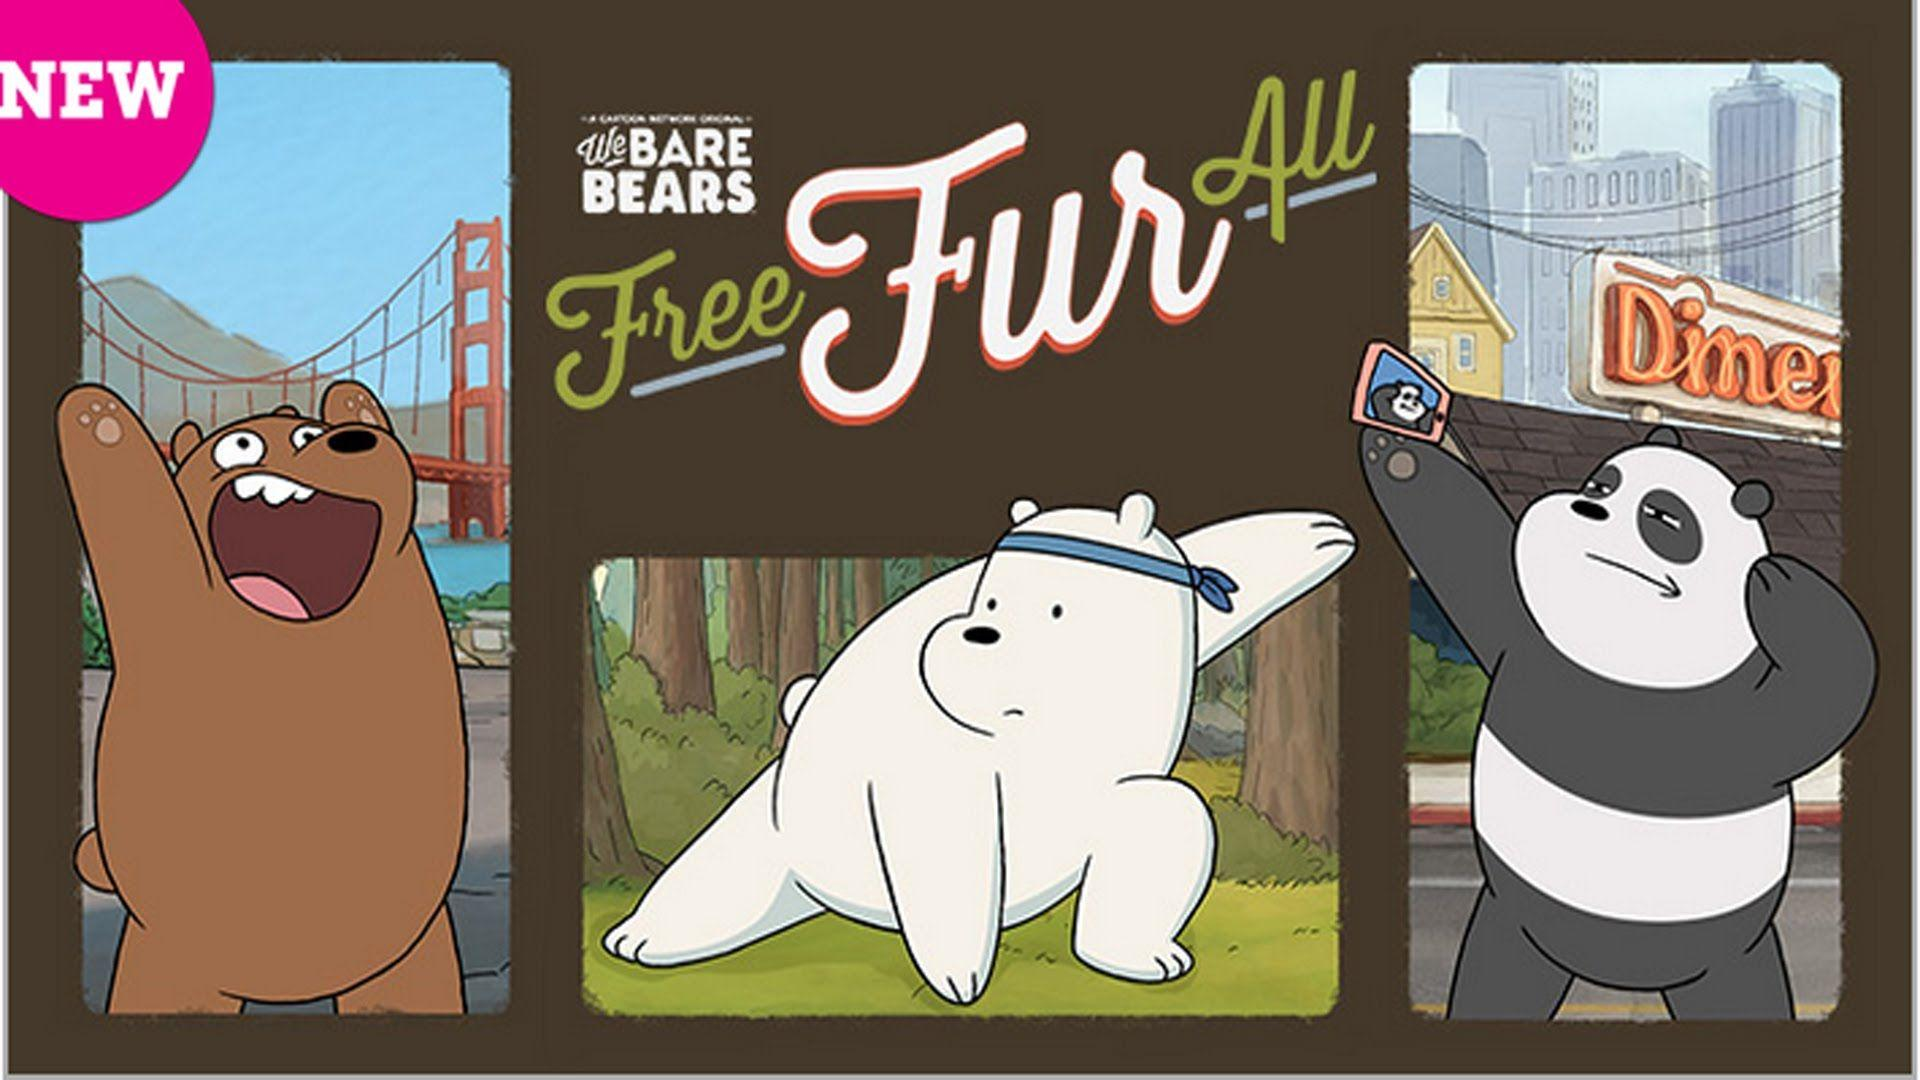 Ice Bear Rules All! | Free Fur All | We Bare Bears Cartoon Network ...